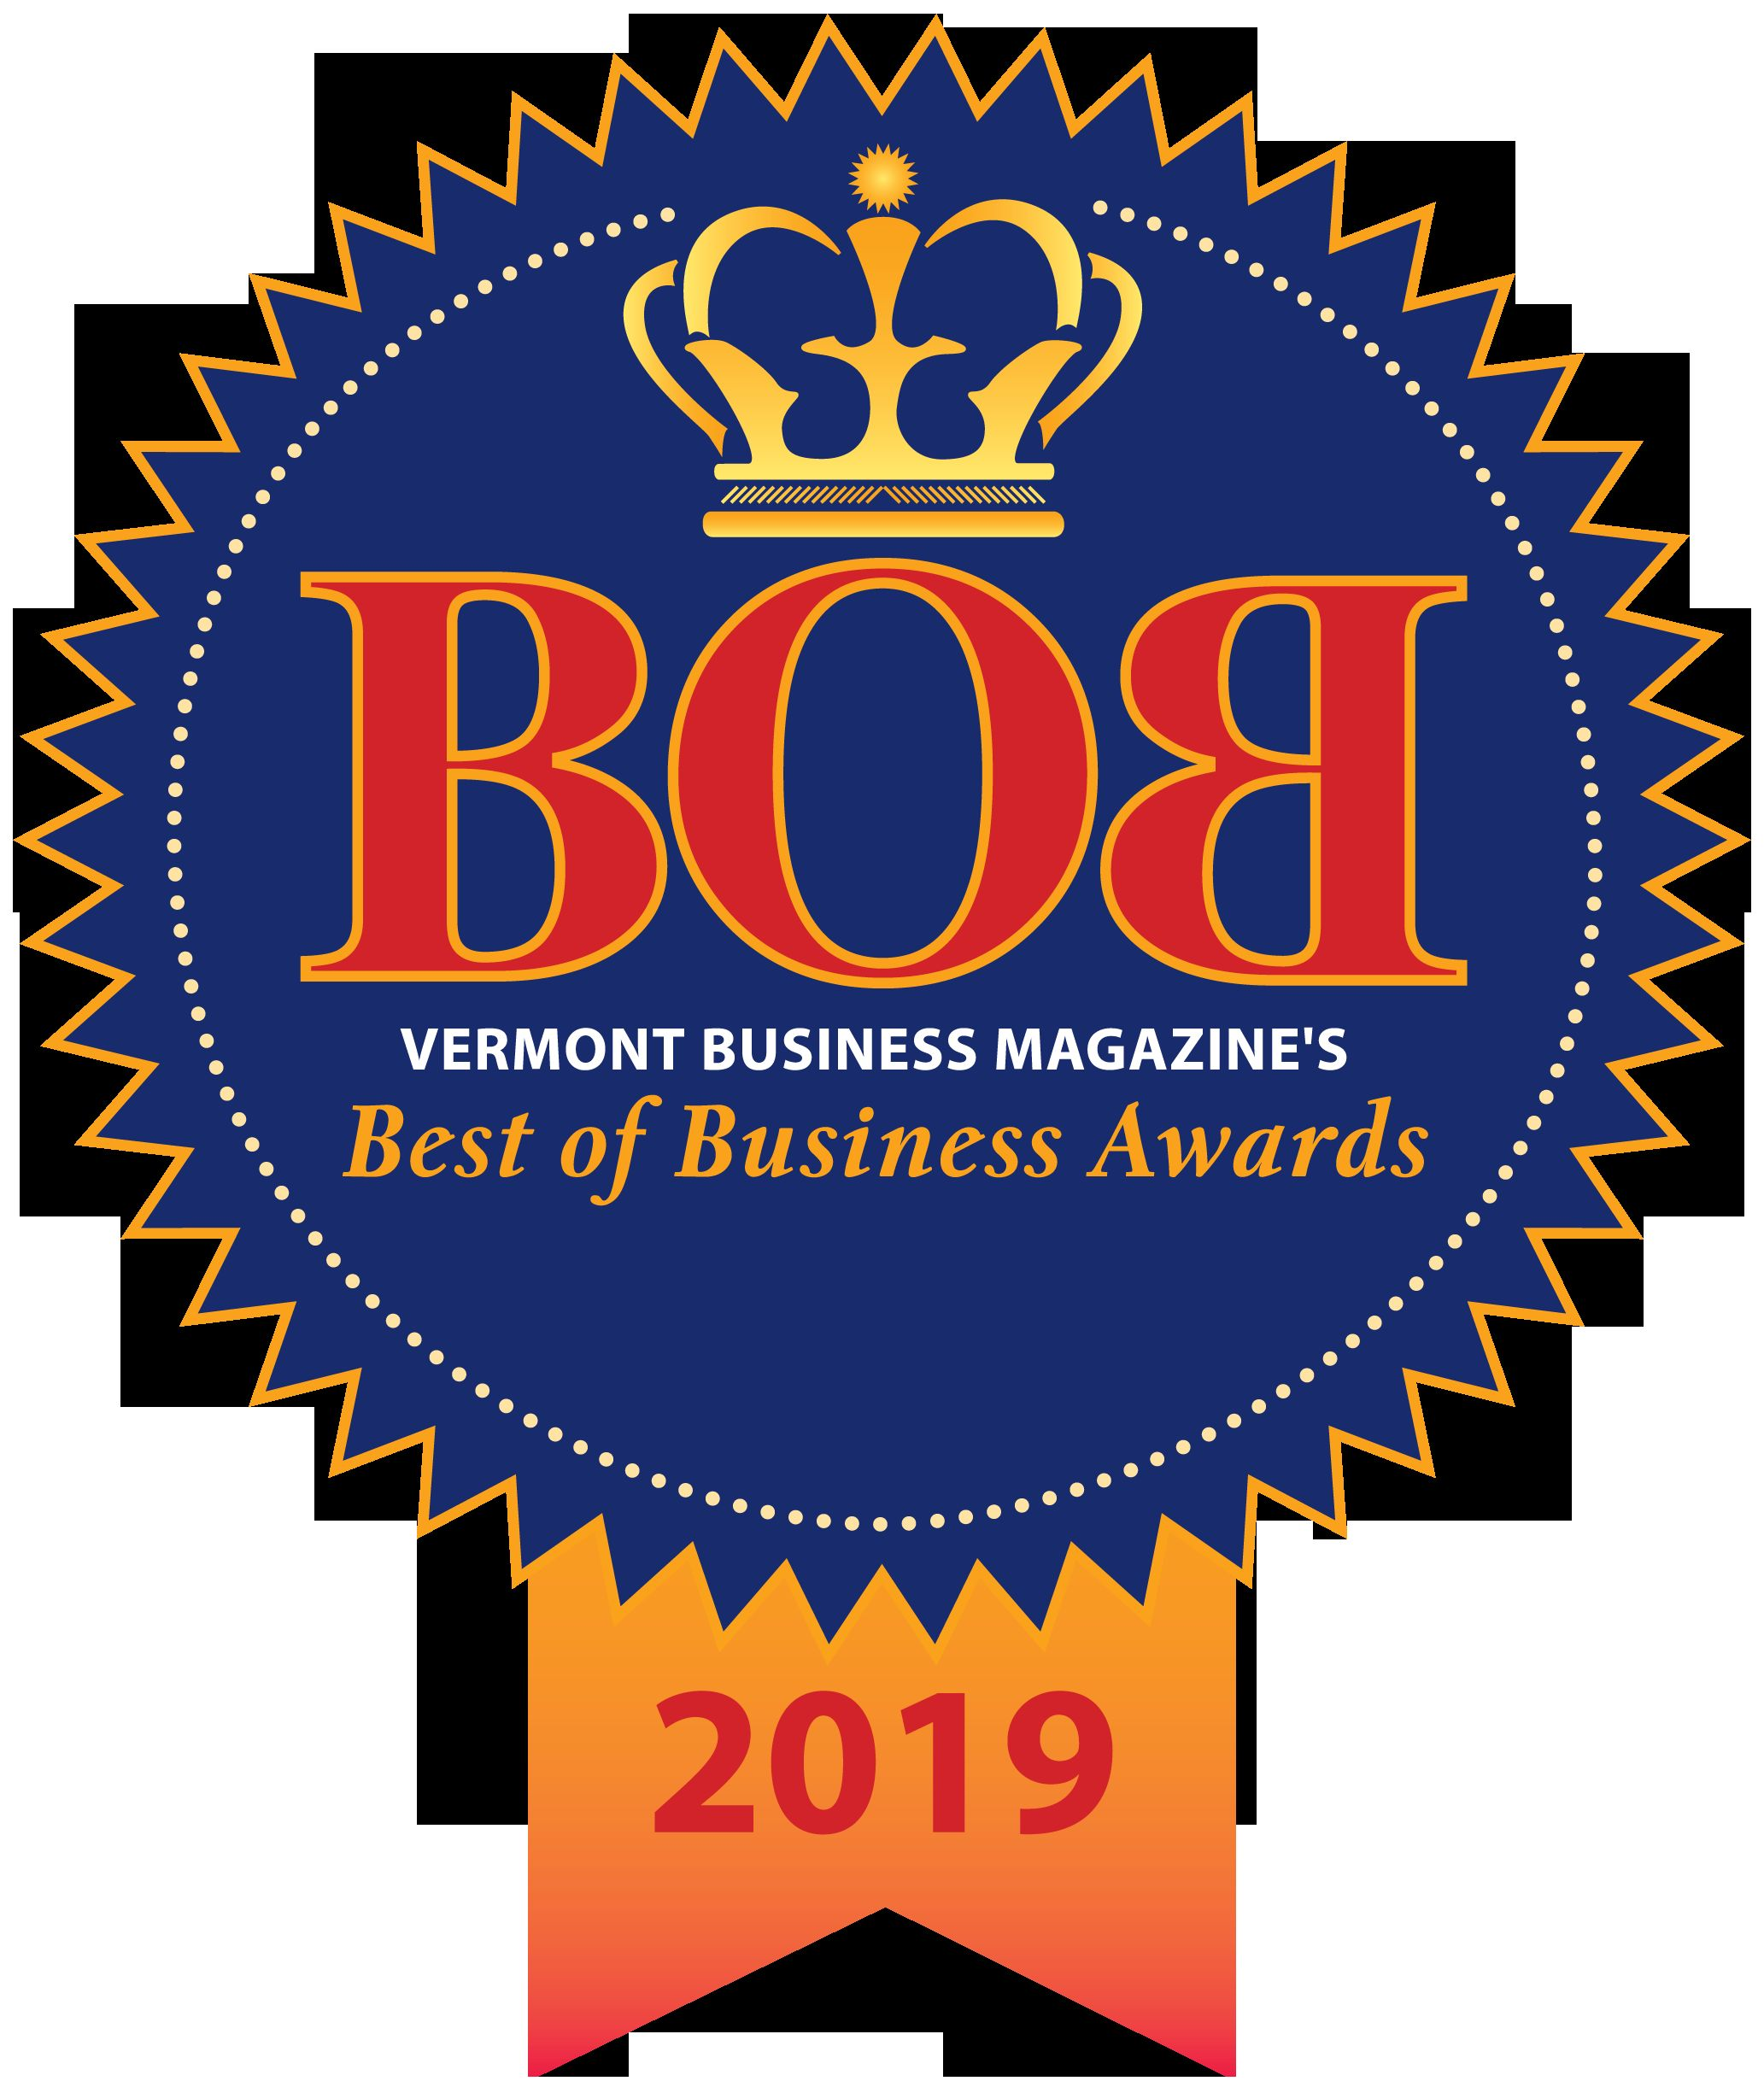 VBM is proud to share the results honoring the Best of Business in Vermont for 2019